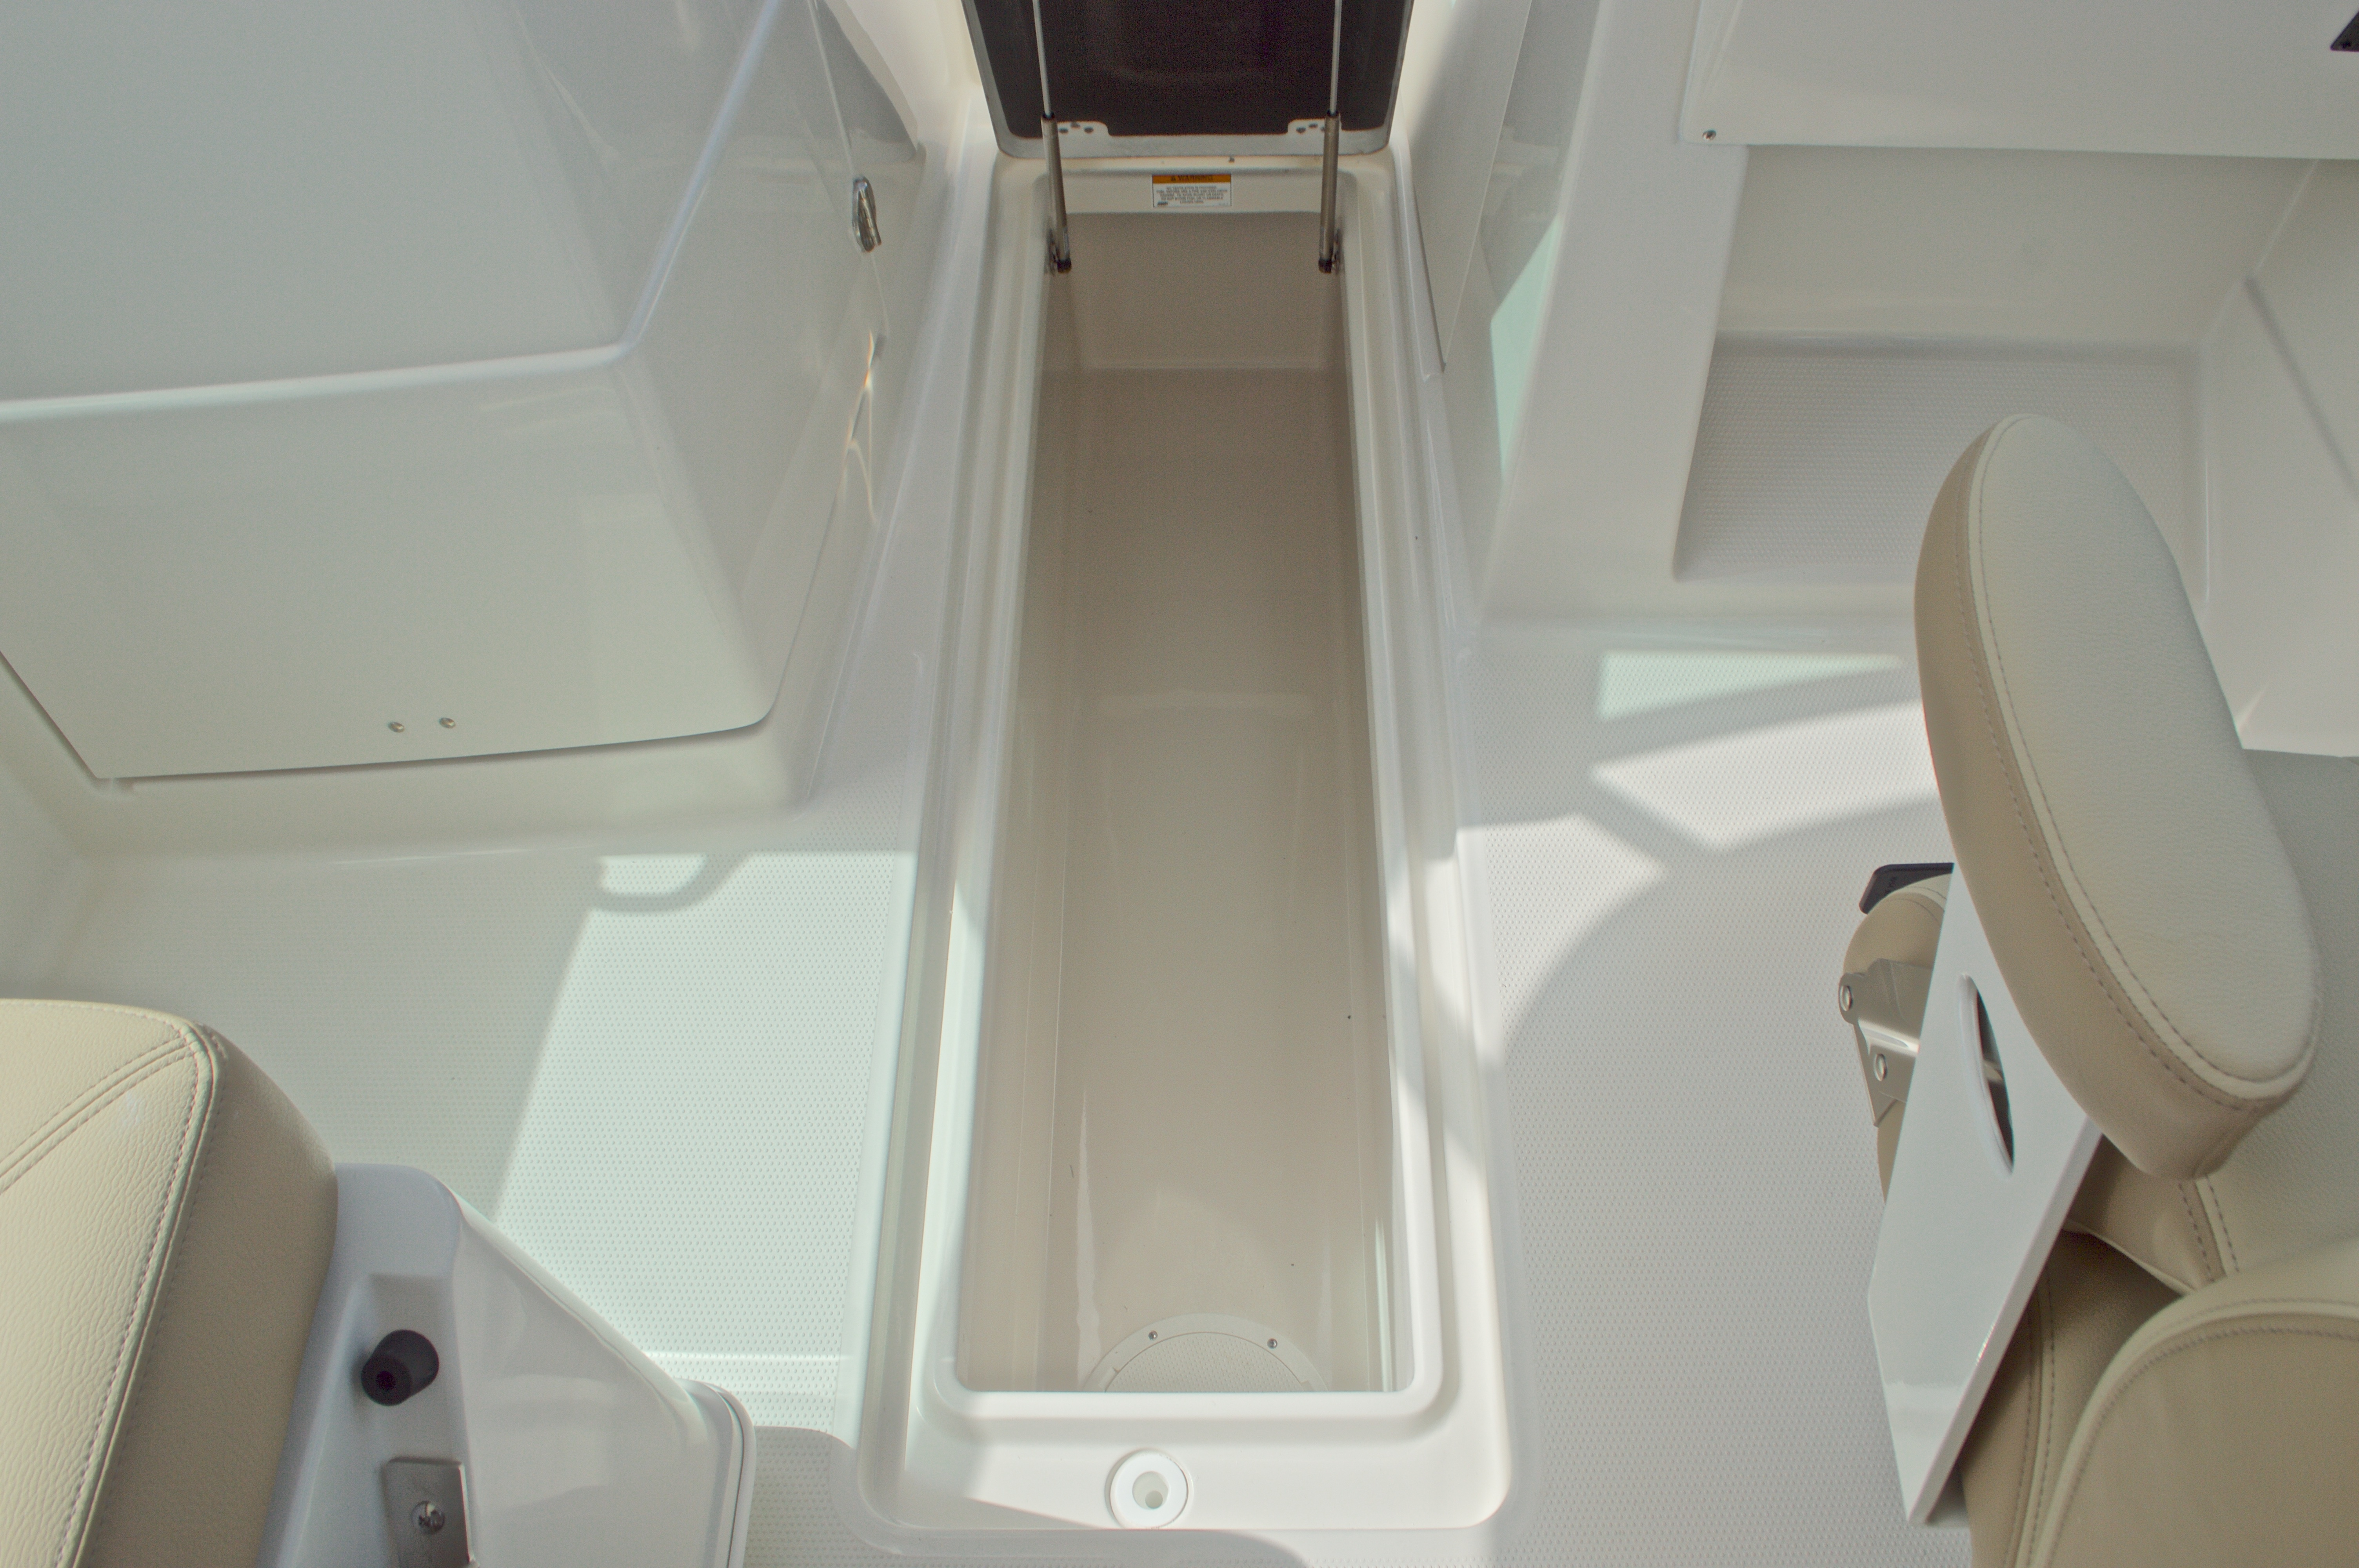 Thumbnail 56 for New 2017 Sailfish 275 Dual Console boat for sale in West Palm Beach, FL